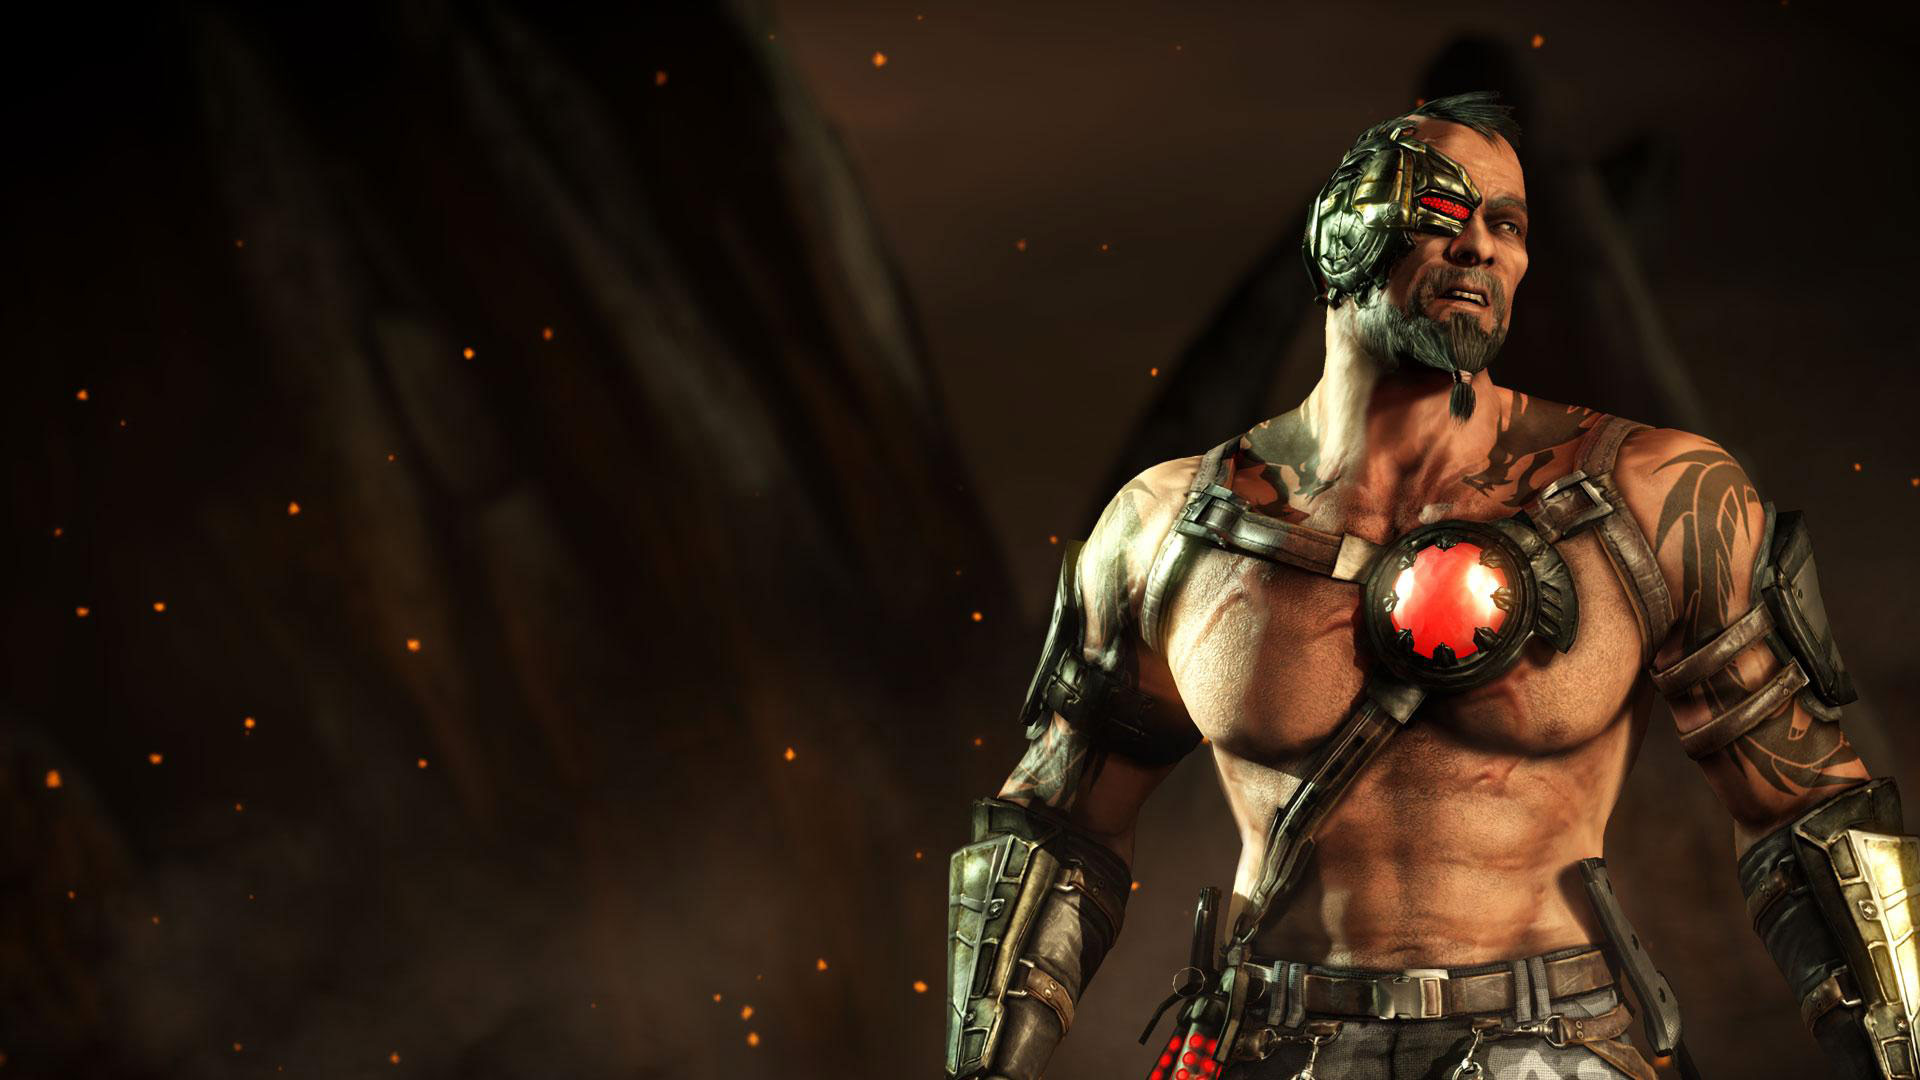 Mileena And Johnny Cage Are Playable Characters In Mortal Kombat X